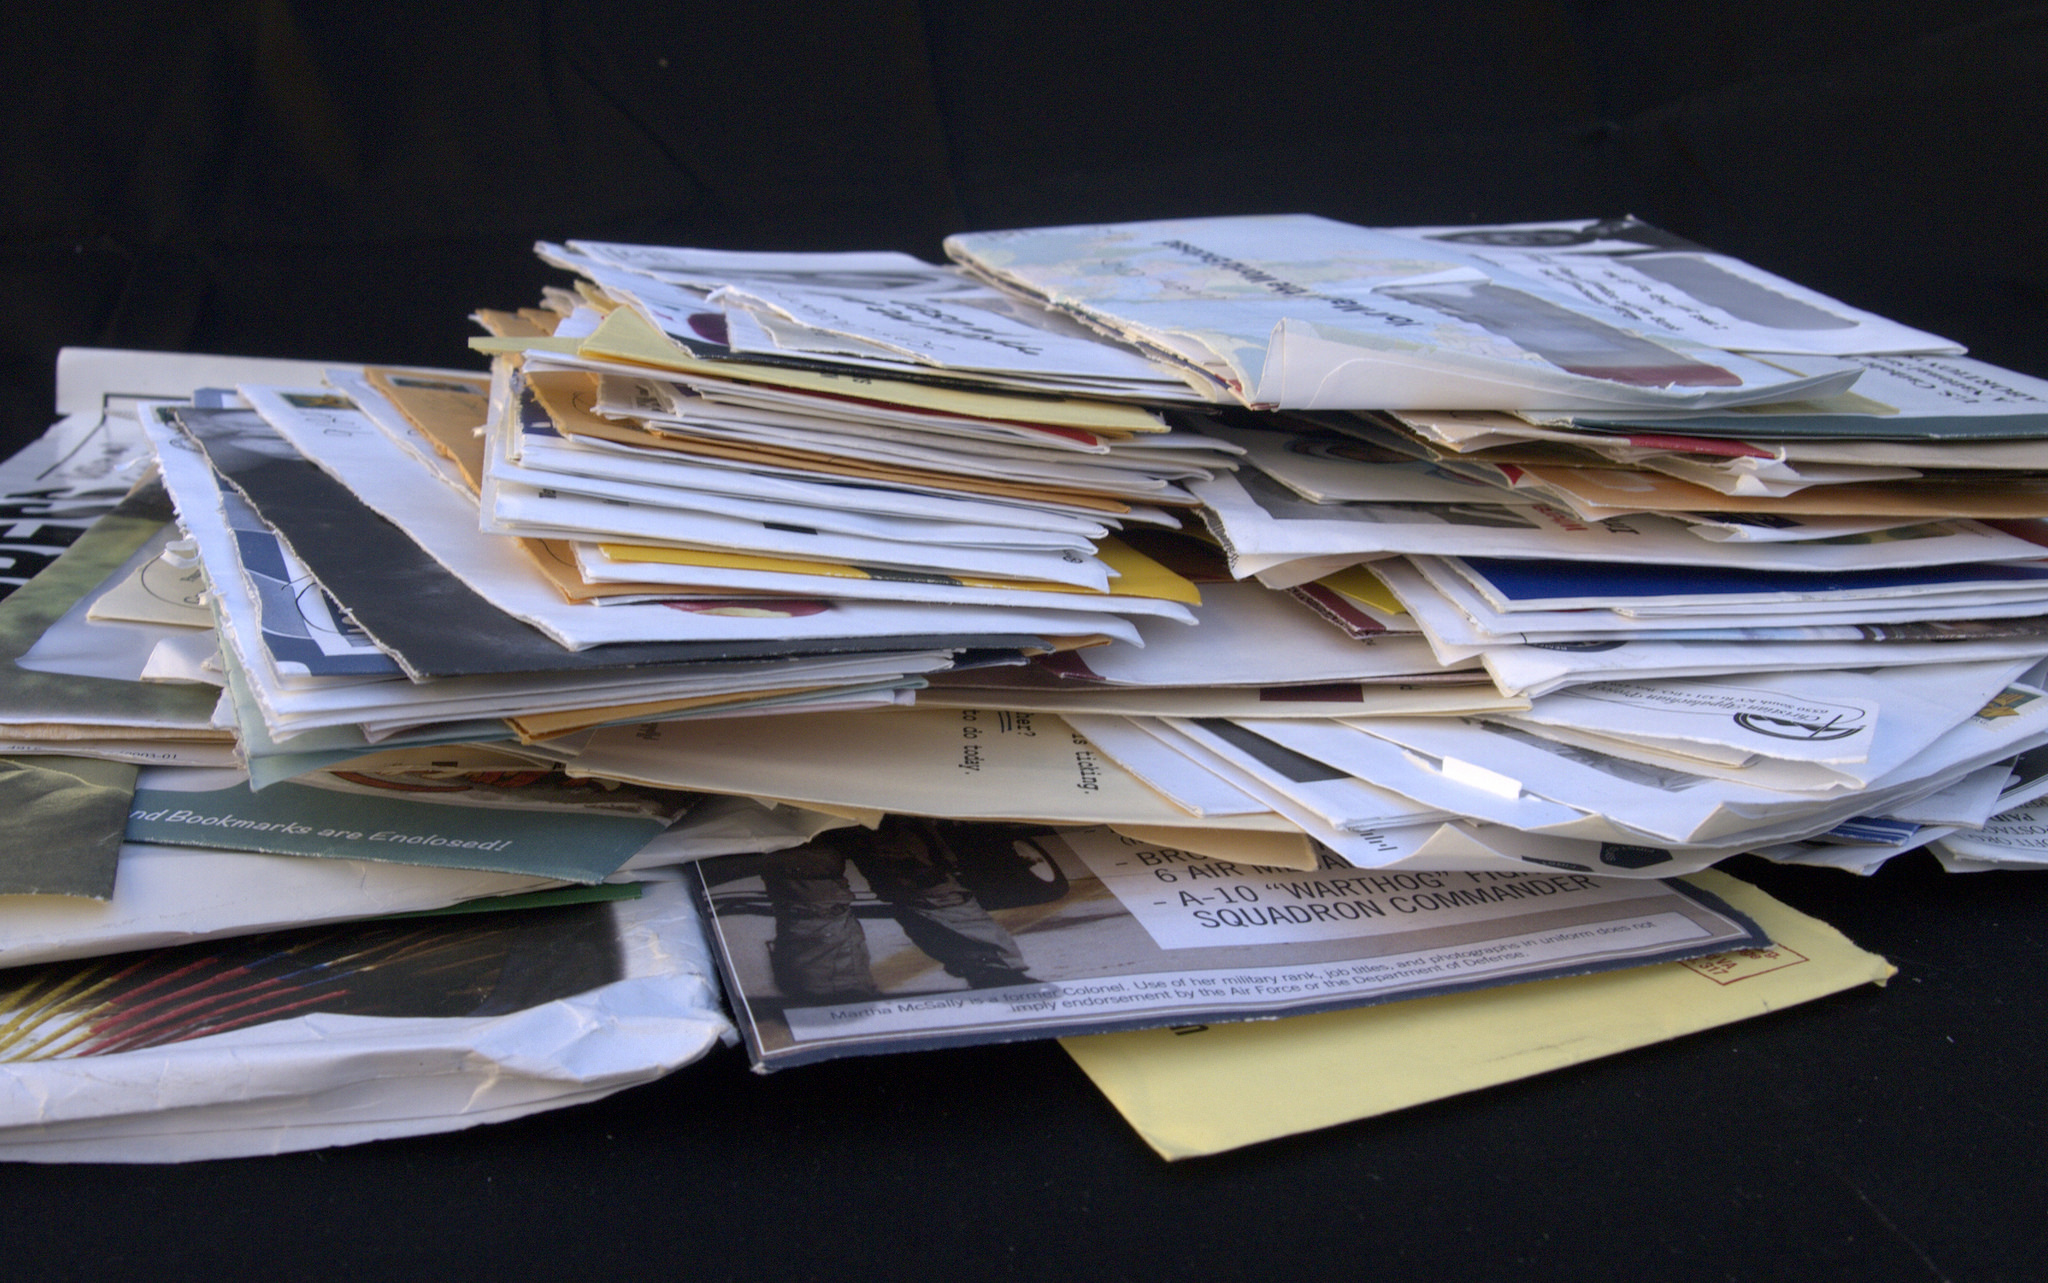 Photograph of a pile of mail